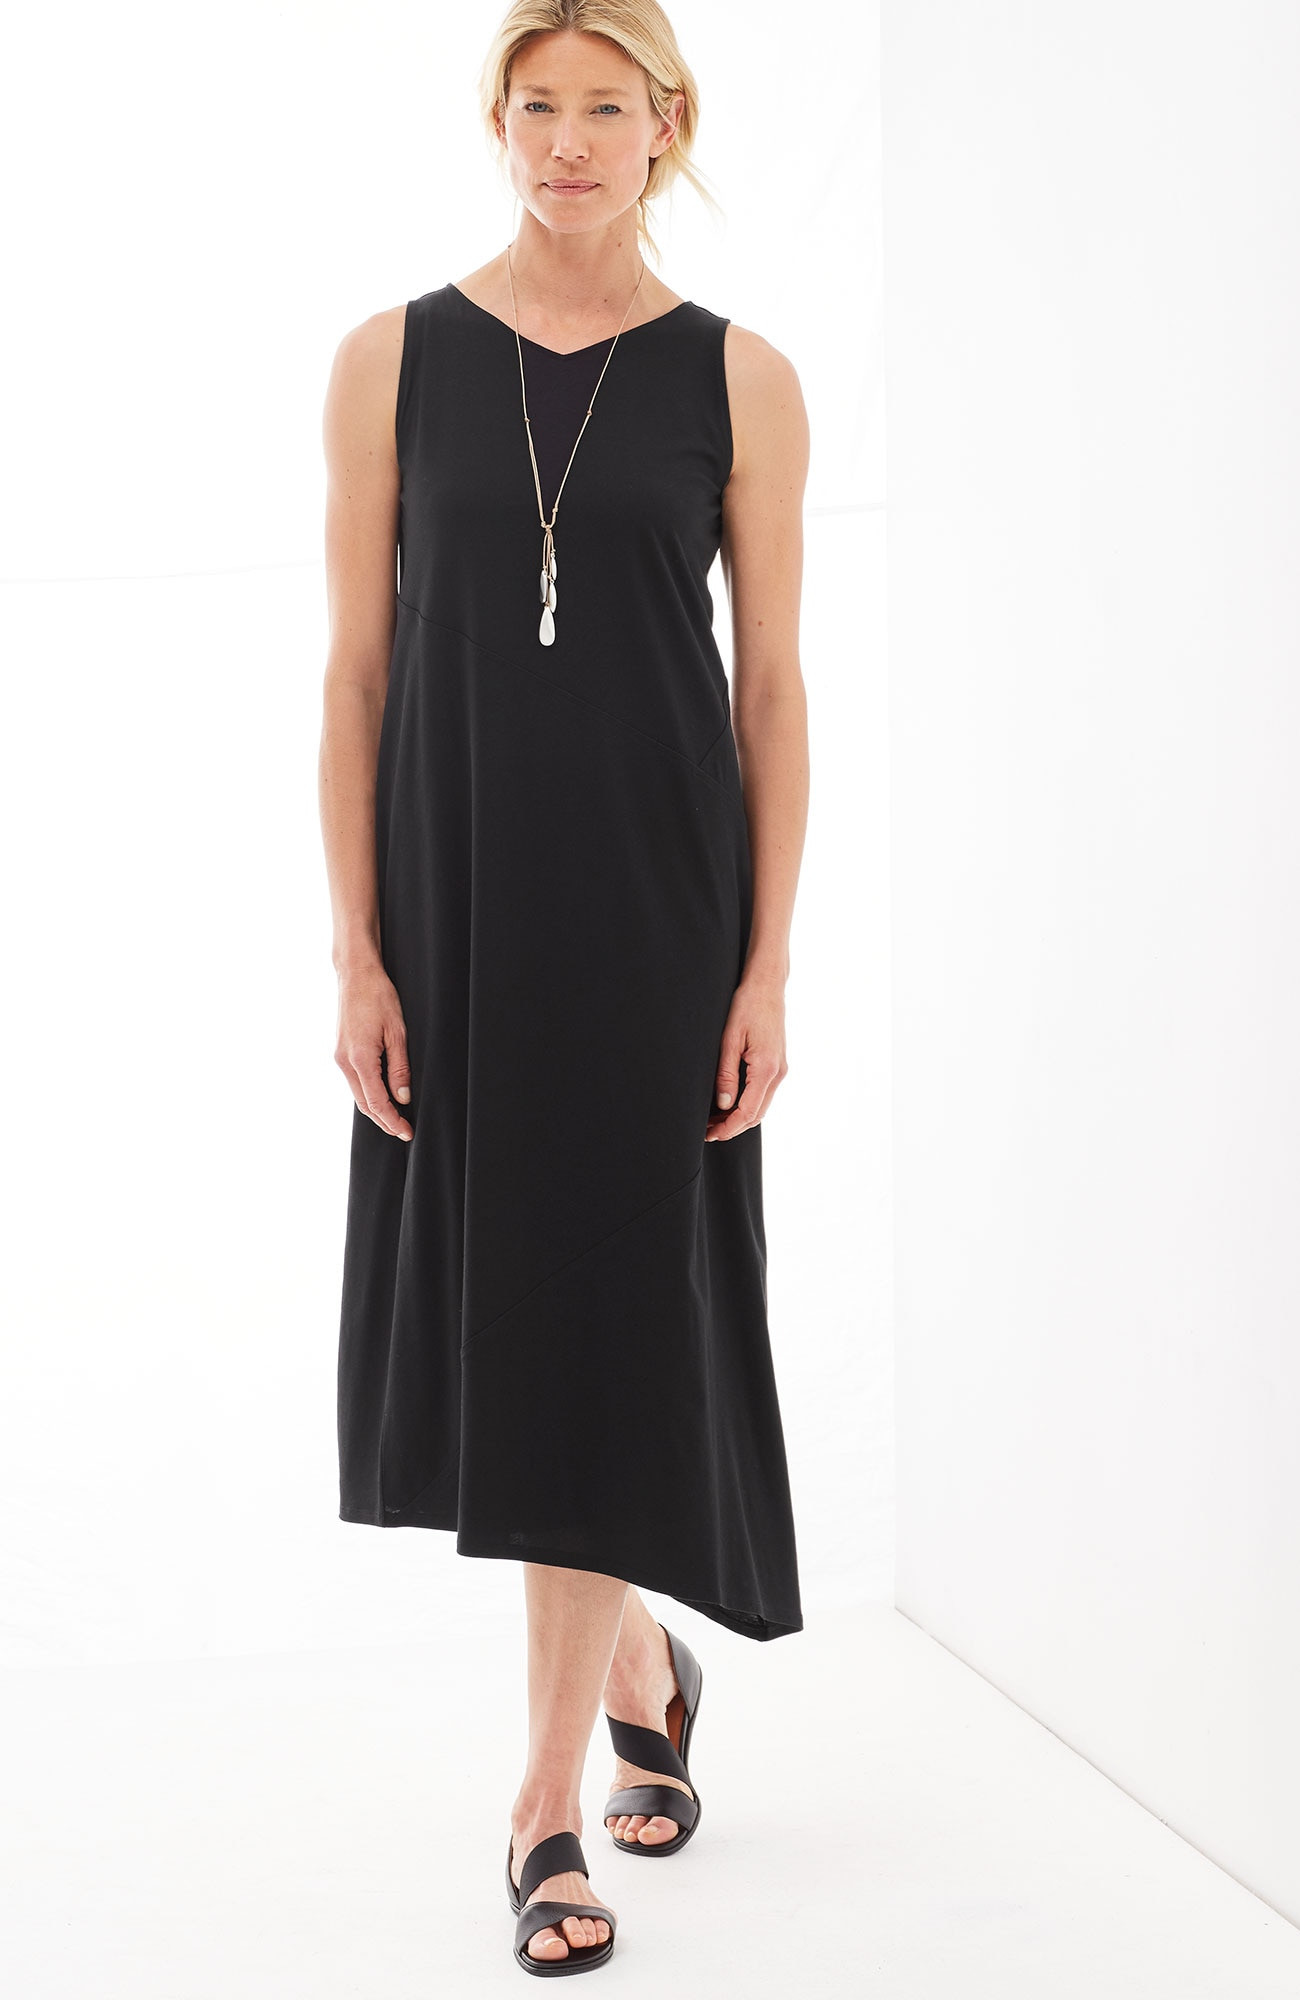 Pure Jill V-neck asymmetric dress